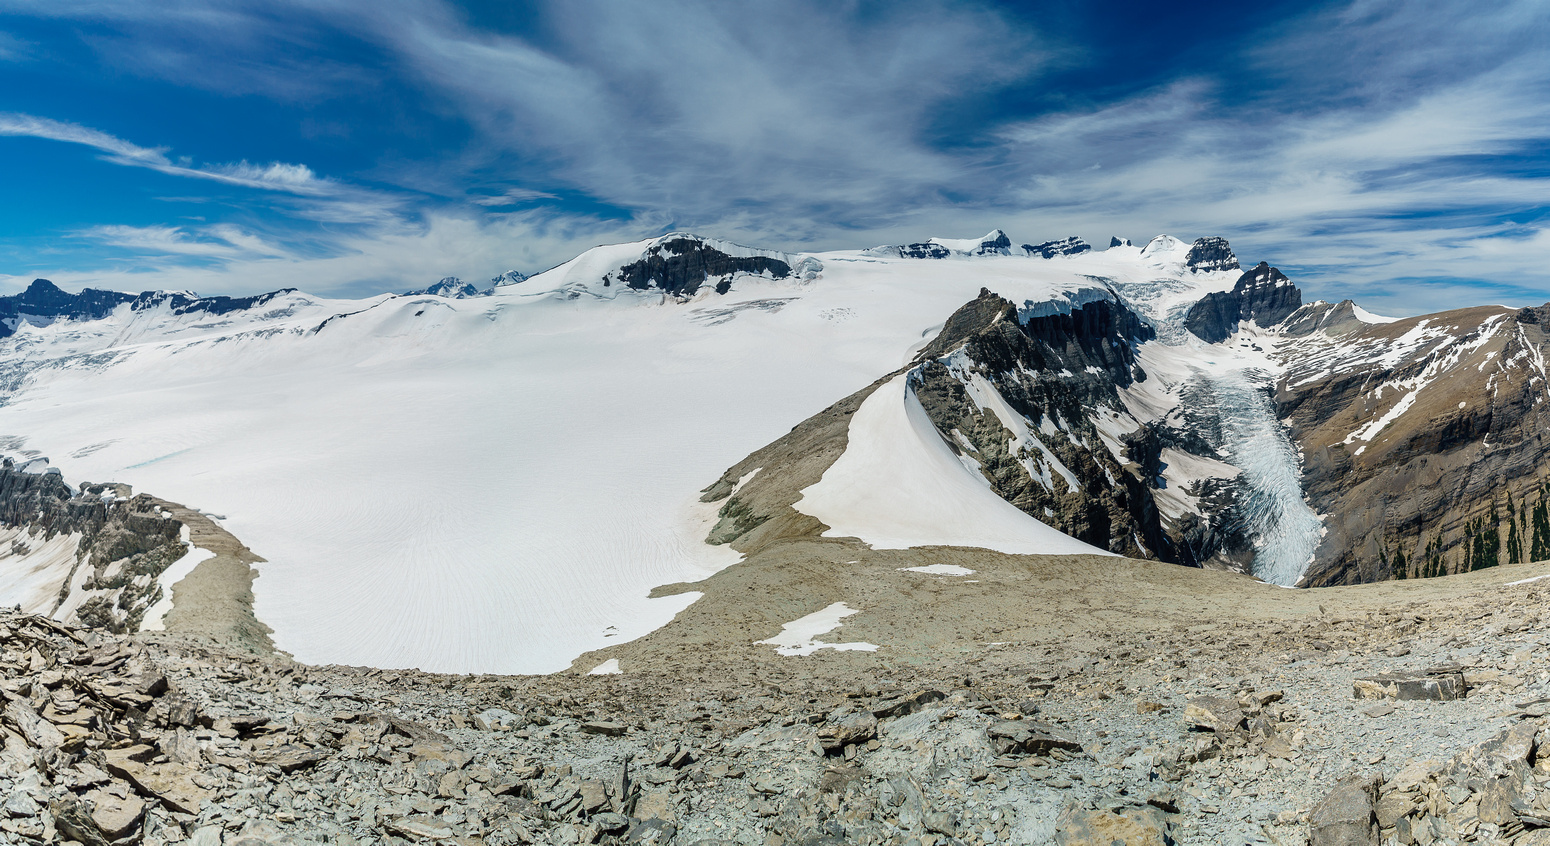 Looking down the west ridge and south shoulder (L) of Arctomys back at the Lyells and their icefield.